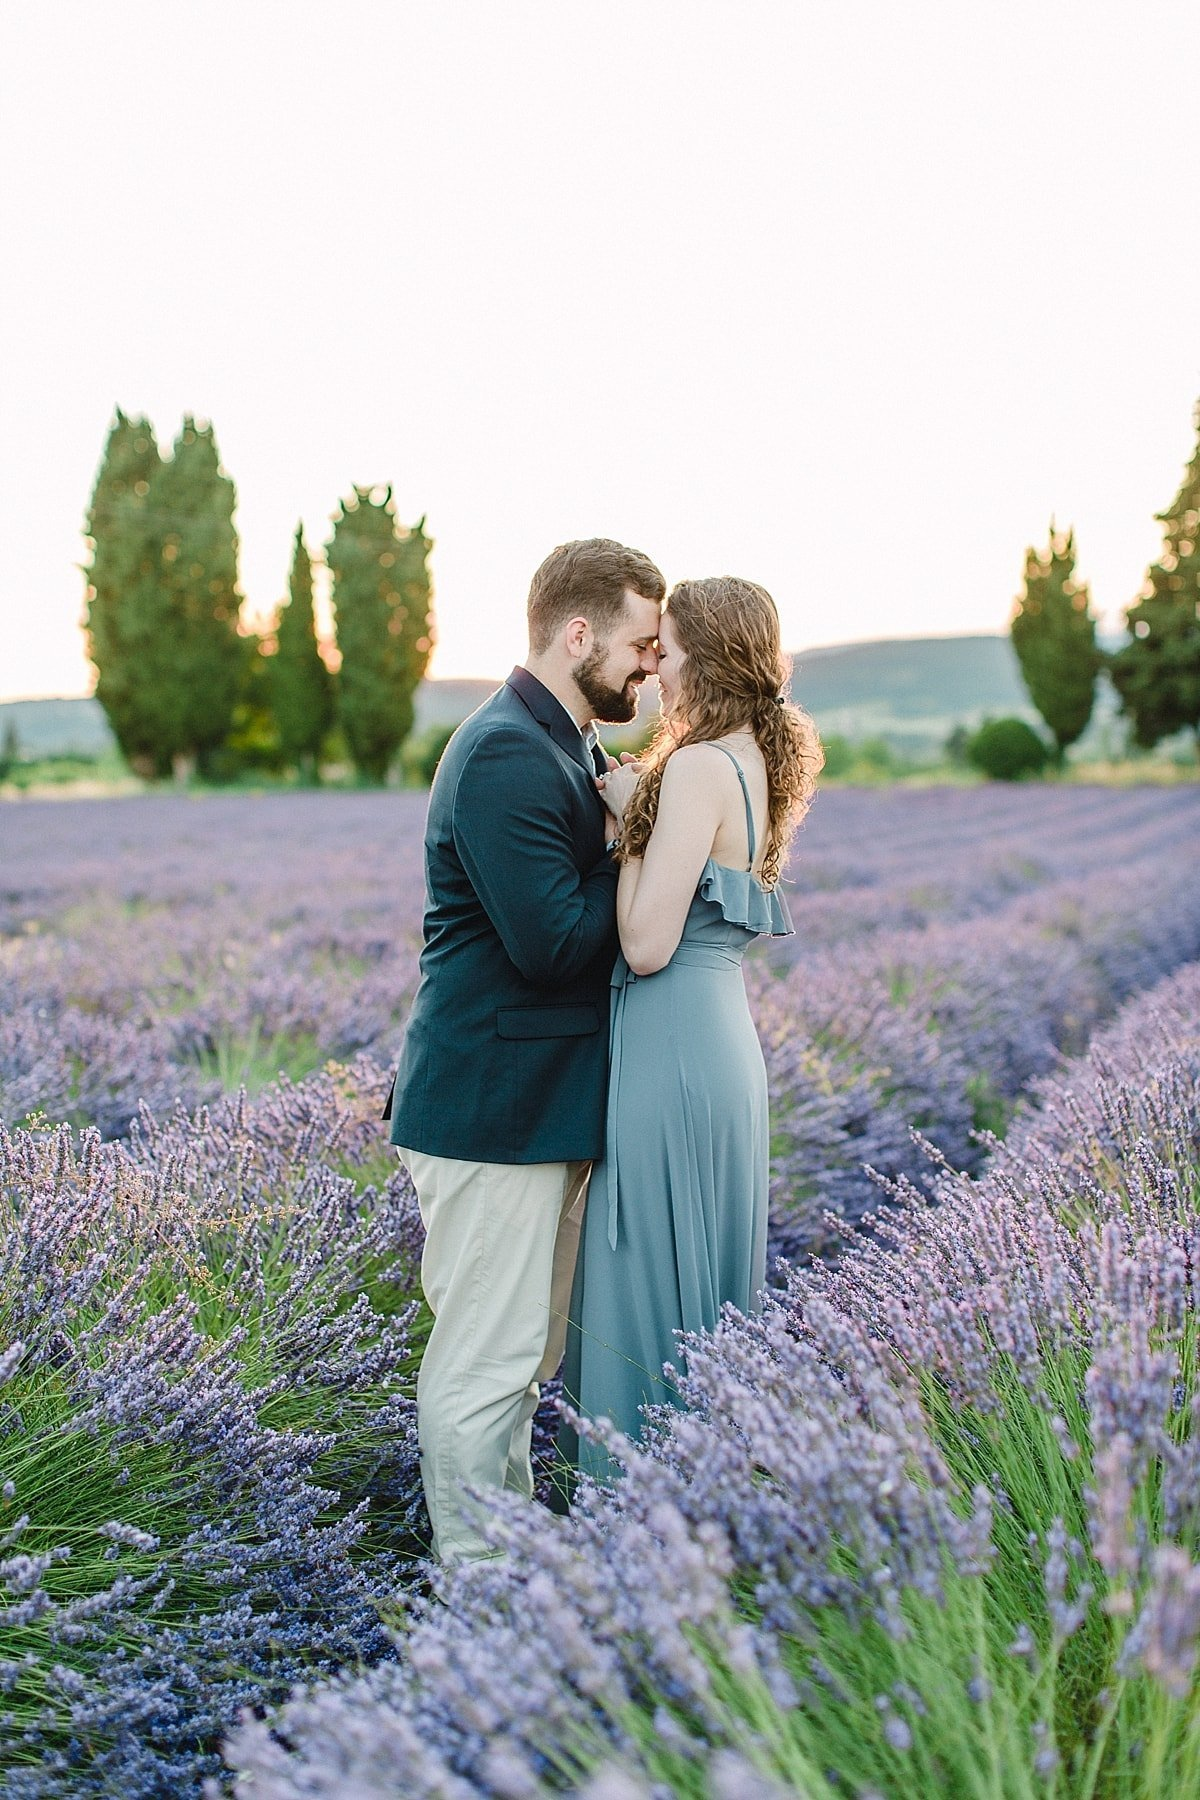 provence-france-lavender-anniversary-session-alicia-yarrish-photography-21